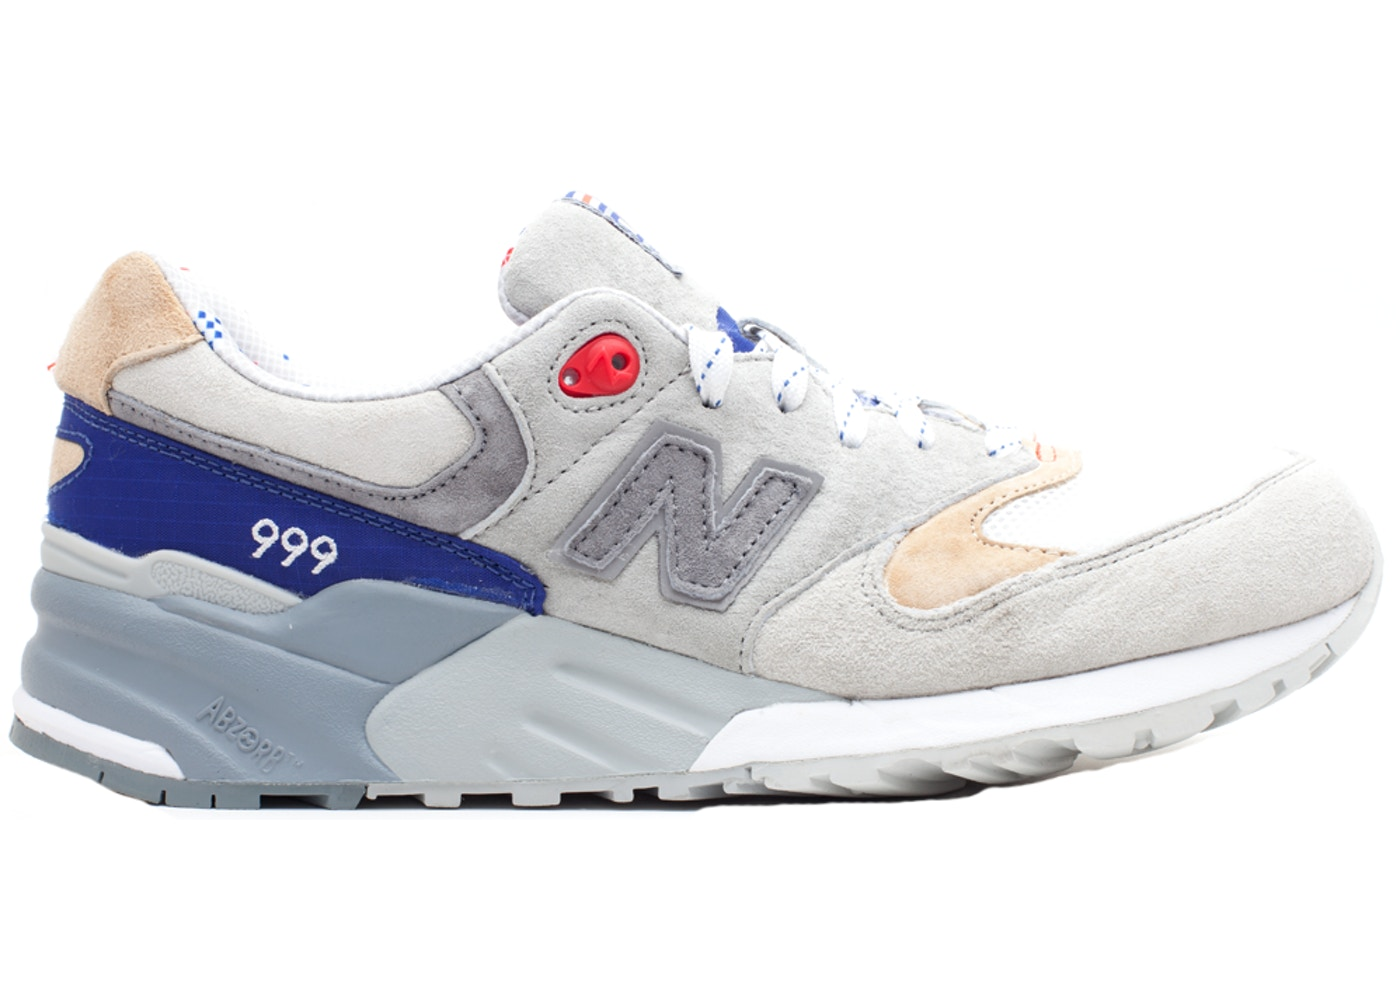 New Balance 999 Concepts The Kennedy